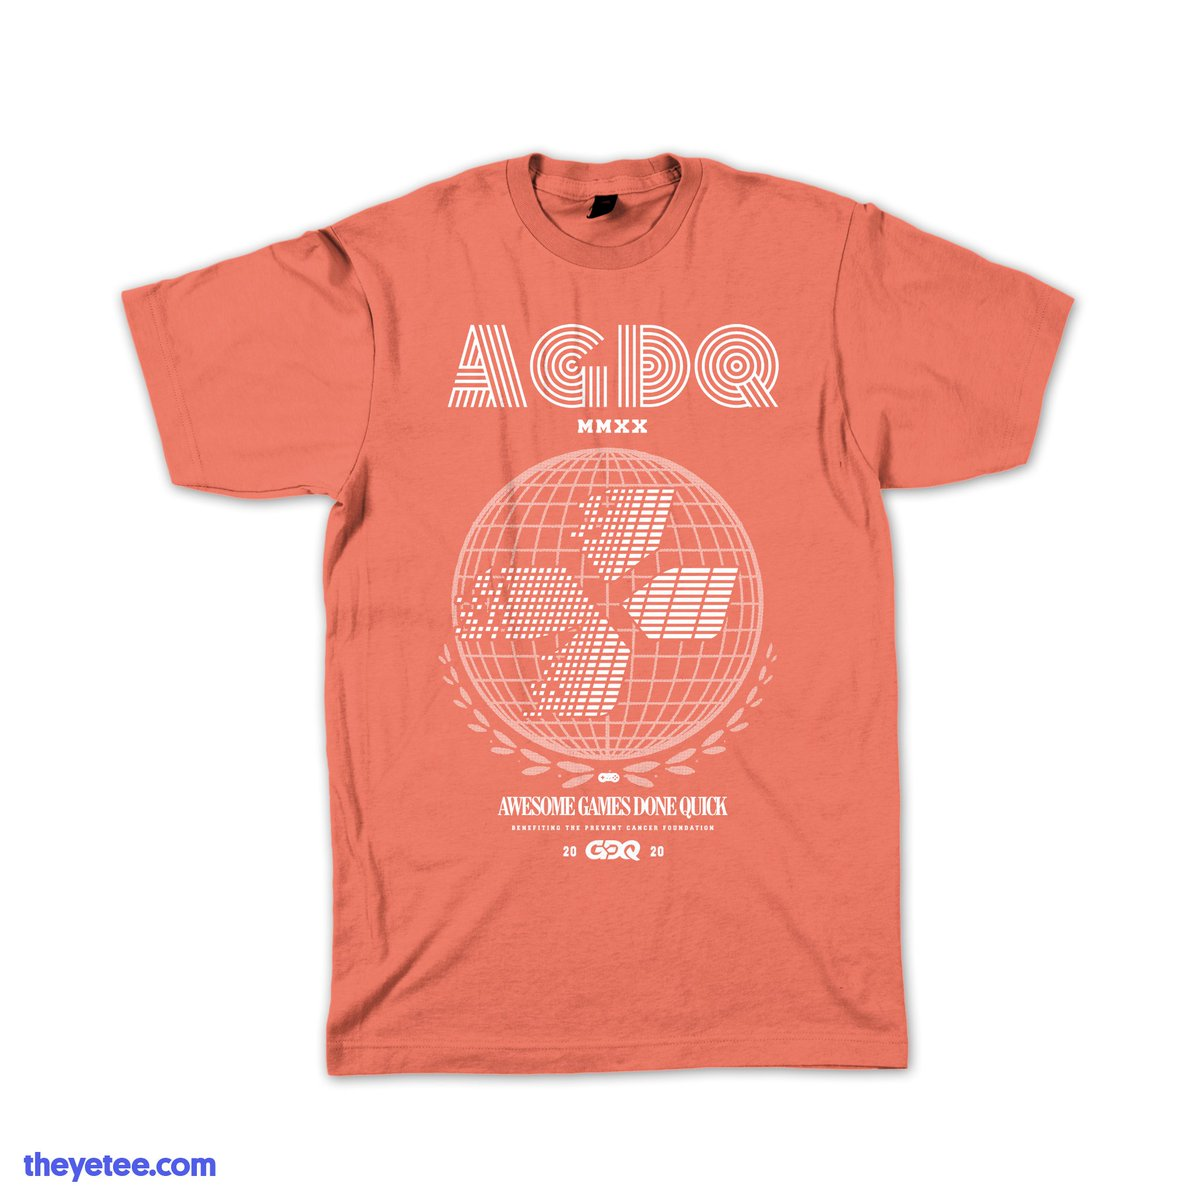 Awesome Games Done Quick 2020.The Yetee On Twitter We Are Proud To Present The Official